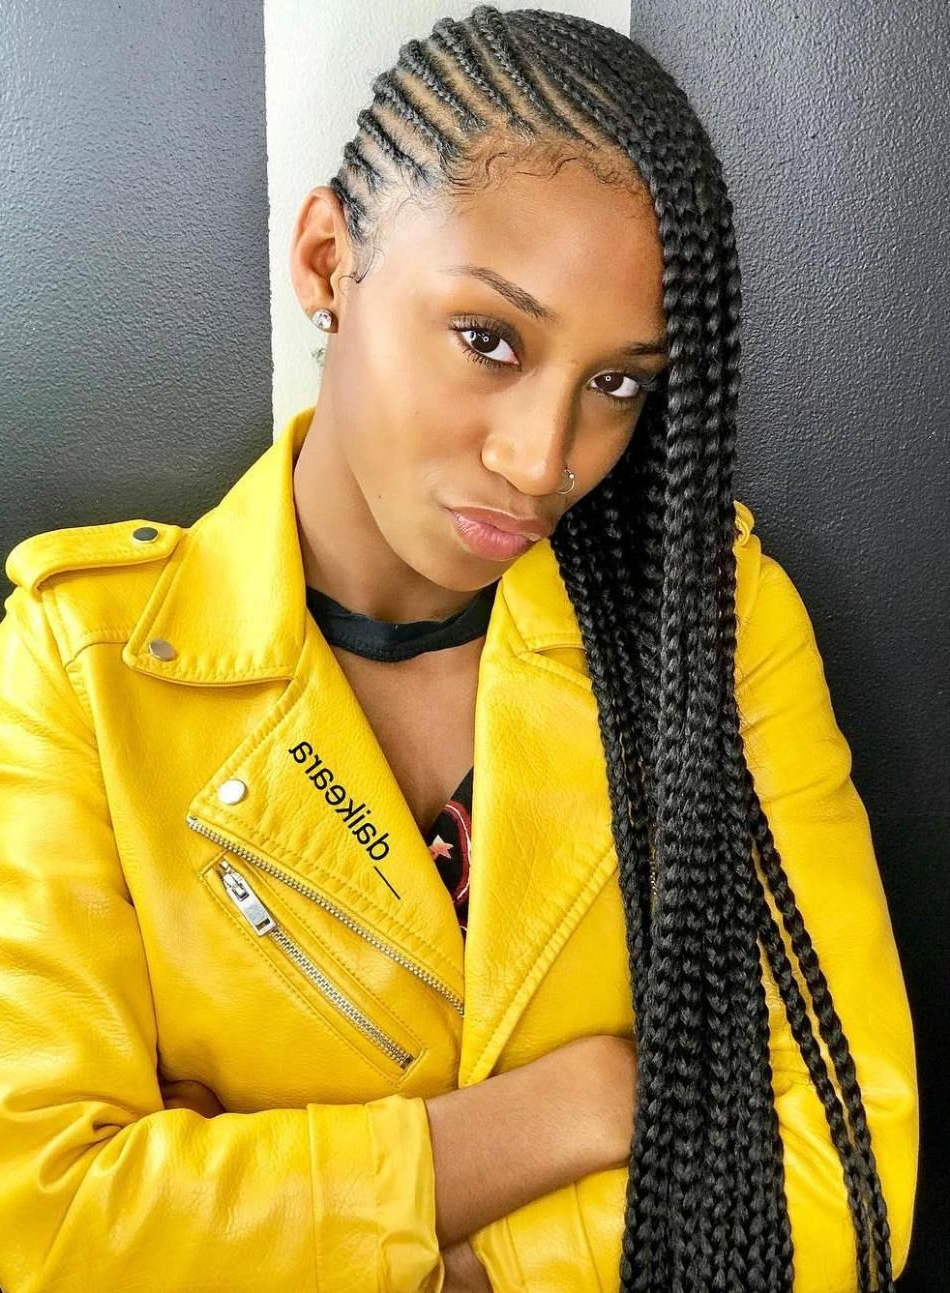 Current Full Scalp Patterned Side Braided Hairstyles Throughout 25 Charming Lemonade Braids To Rock Your Appearance (View 11 of 20)